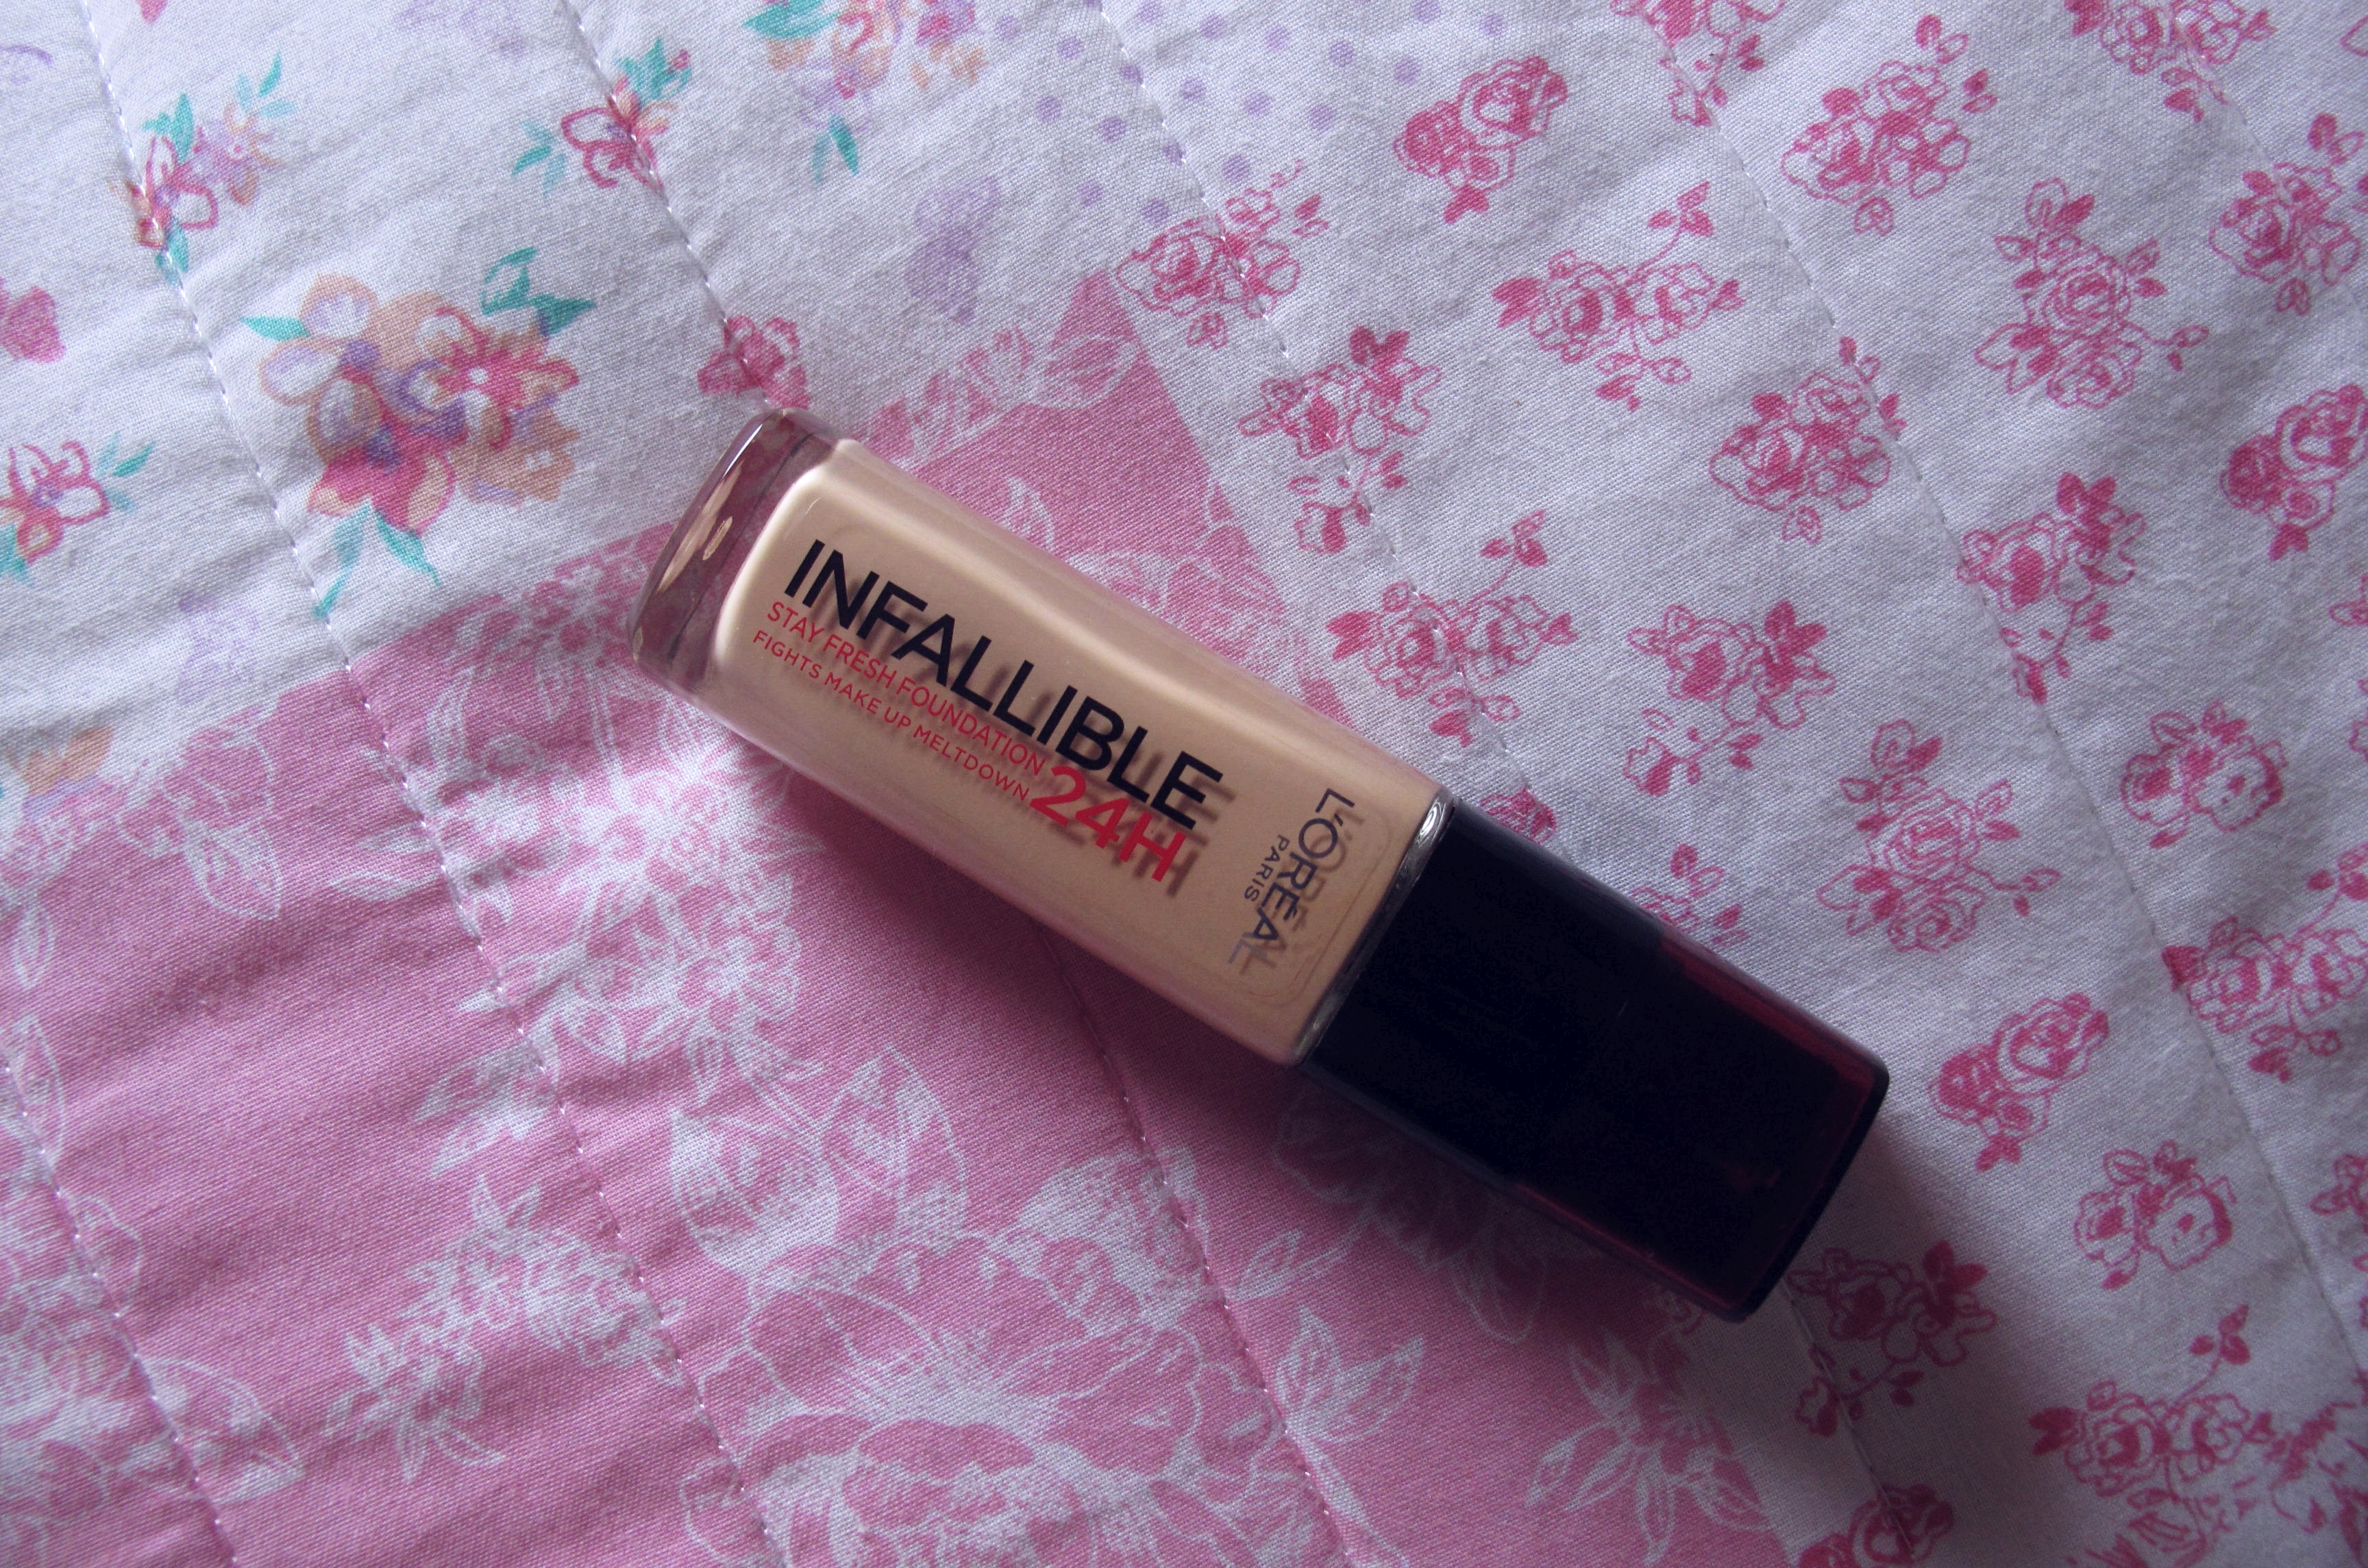 L'Oreal Infallible 24HR Foundation in Shade 140 - Golden Beige